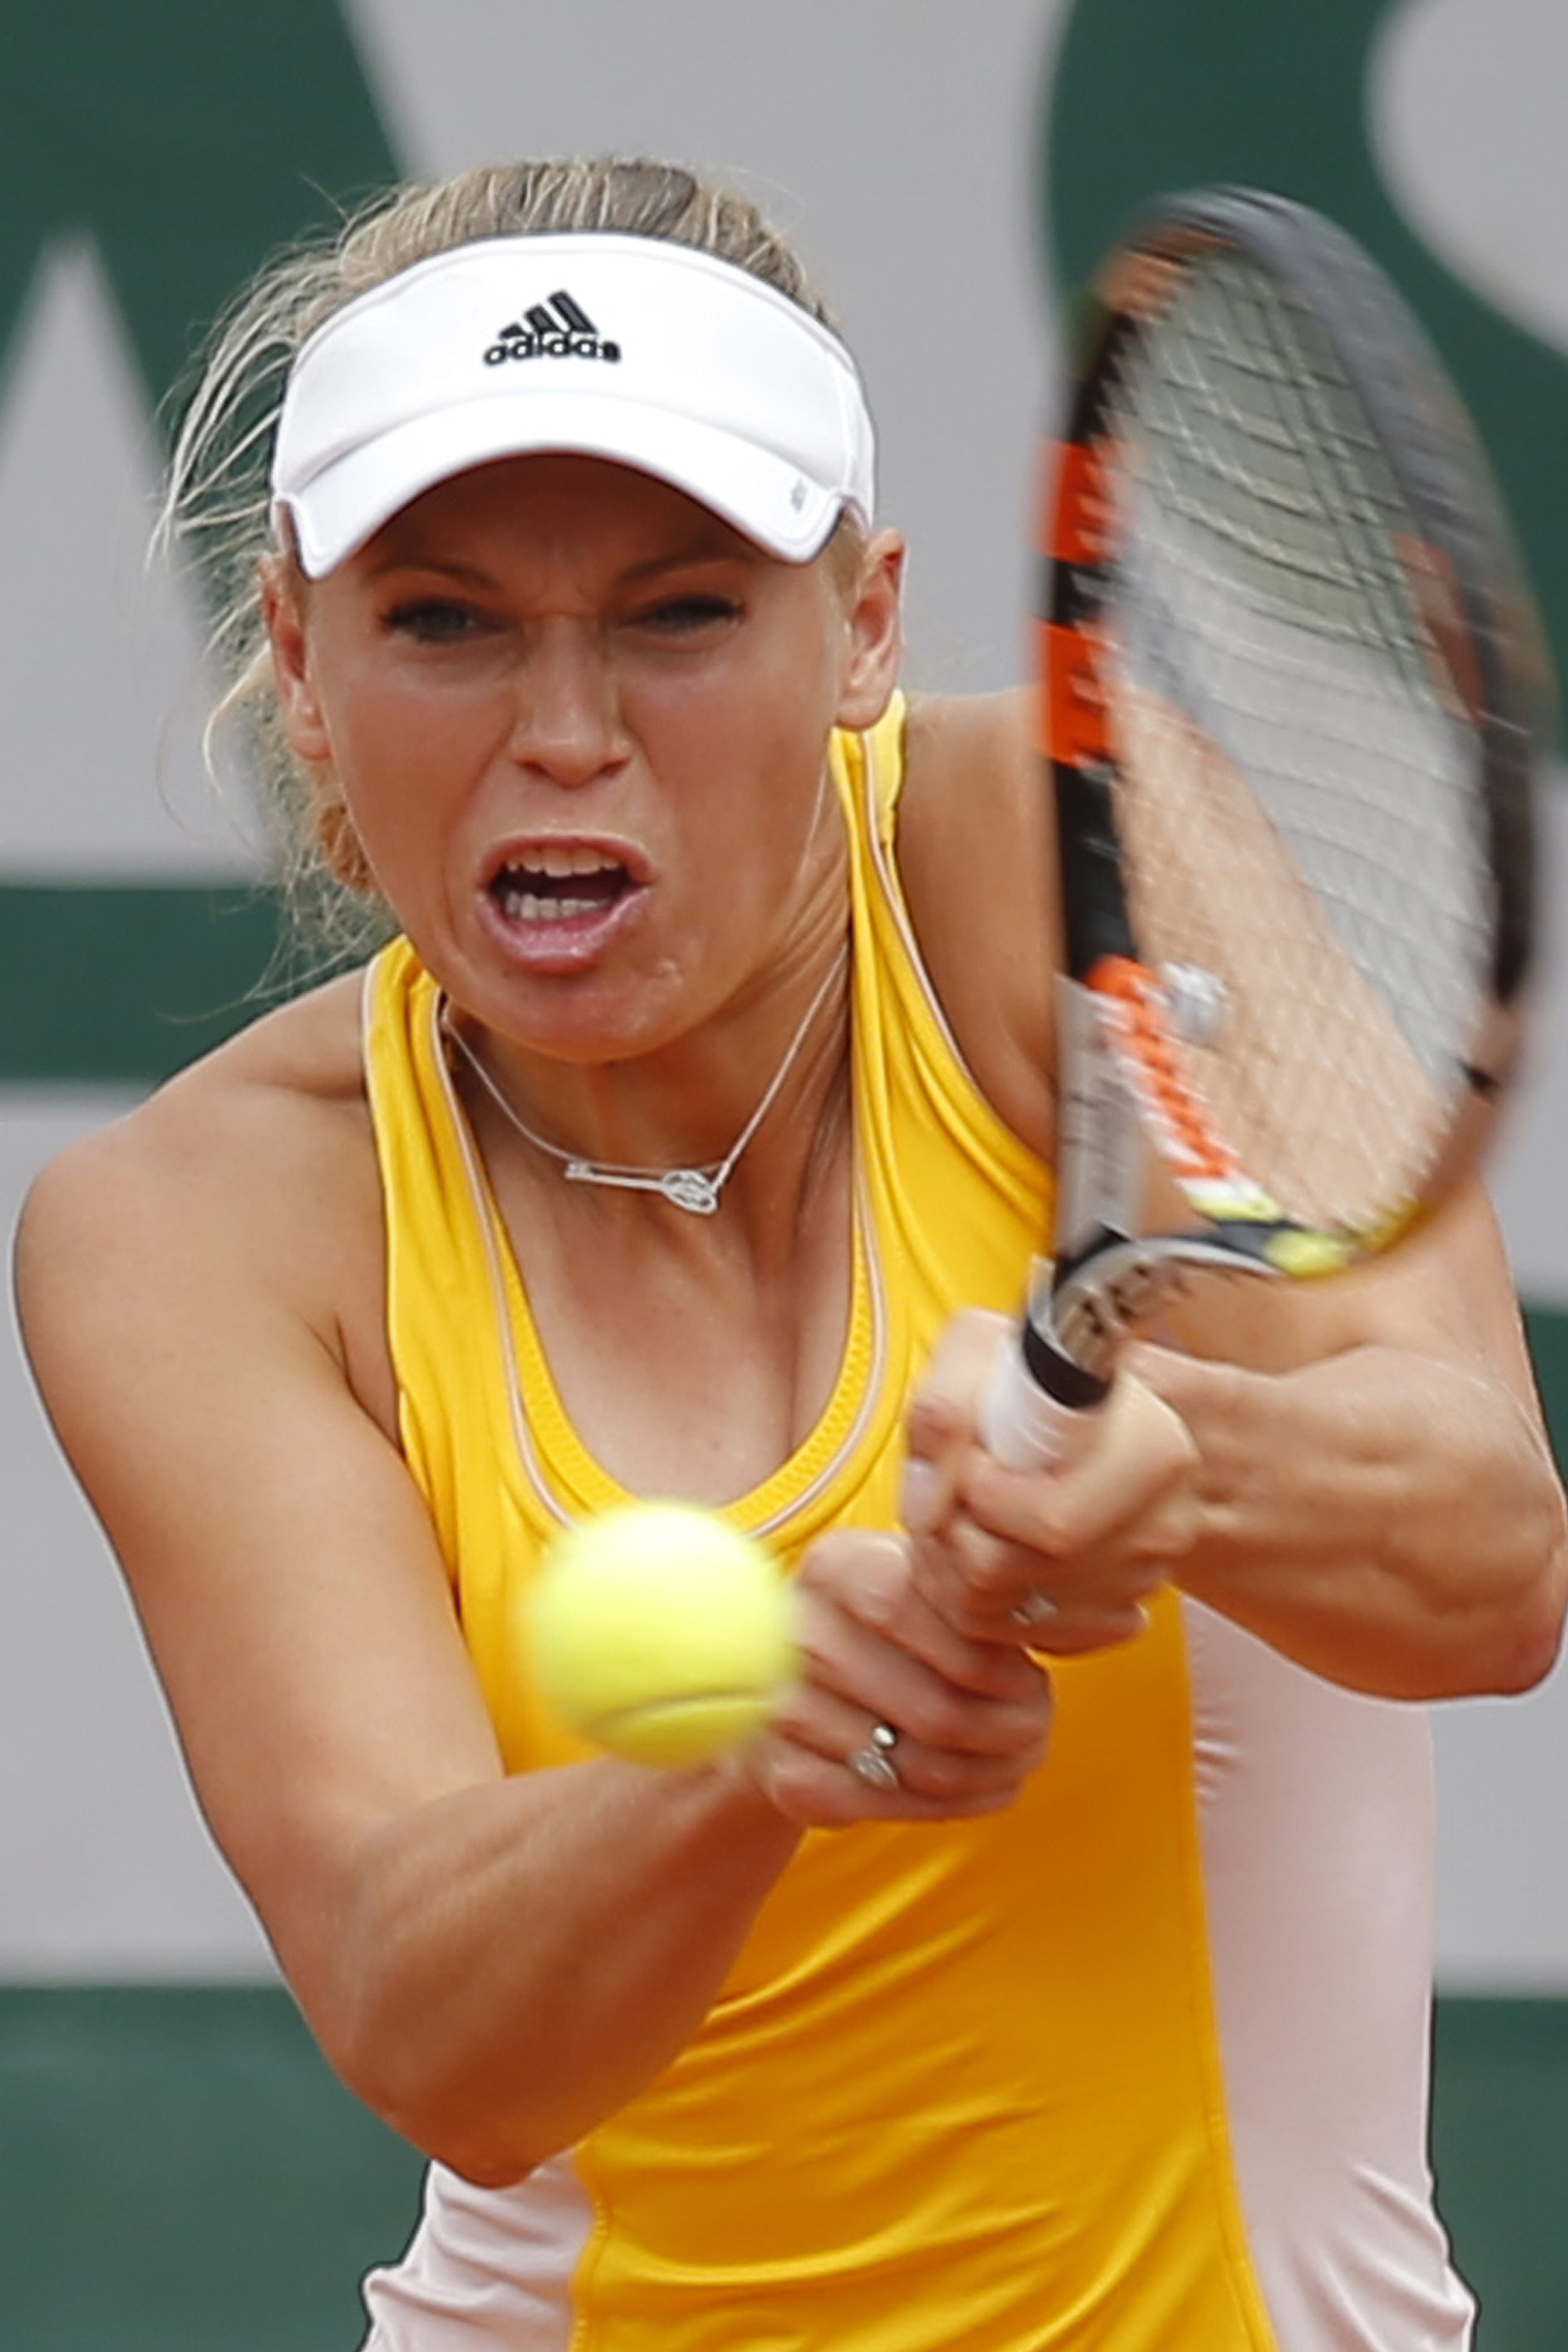 Denmark's Caroline Wozniacki returns in the first round match of the French Open tennis tournament against Italy's Karin Knapp at the Roland Garros stadium, in Paris, France, Tuesday, May 26, 2015. (AP Photo/Francois Mori)